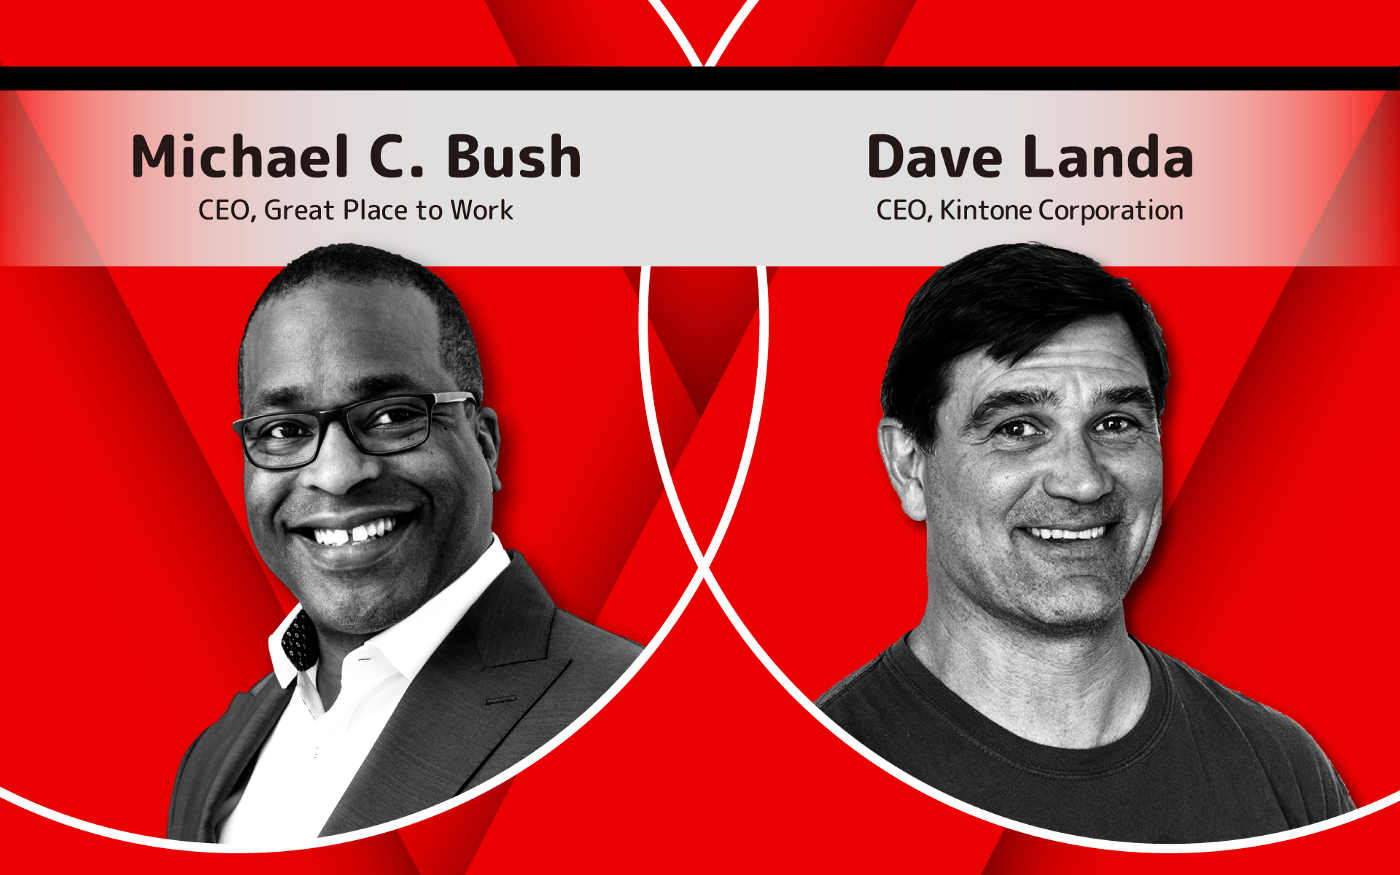 Headshots of Great Place to Work CEO Michael C. Bush (left) and Kintone CEO Dave Landa (right)